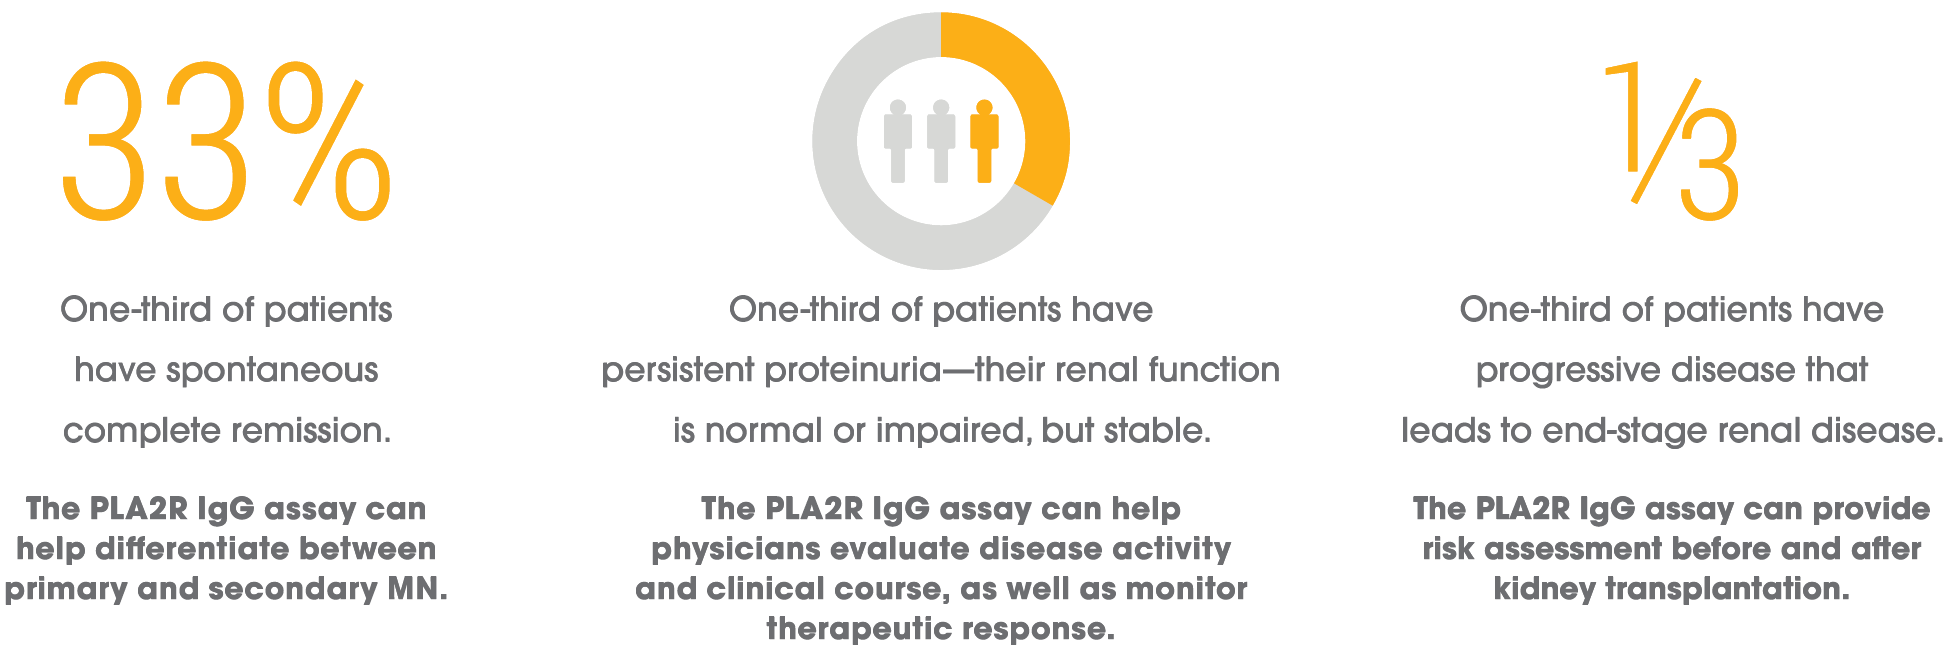 Benefits of the PLA2R IgG Assay